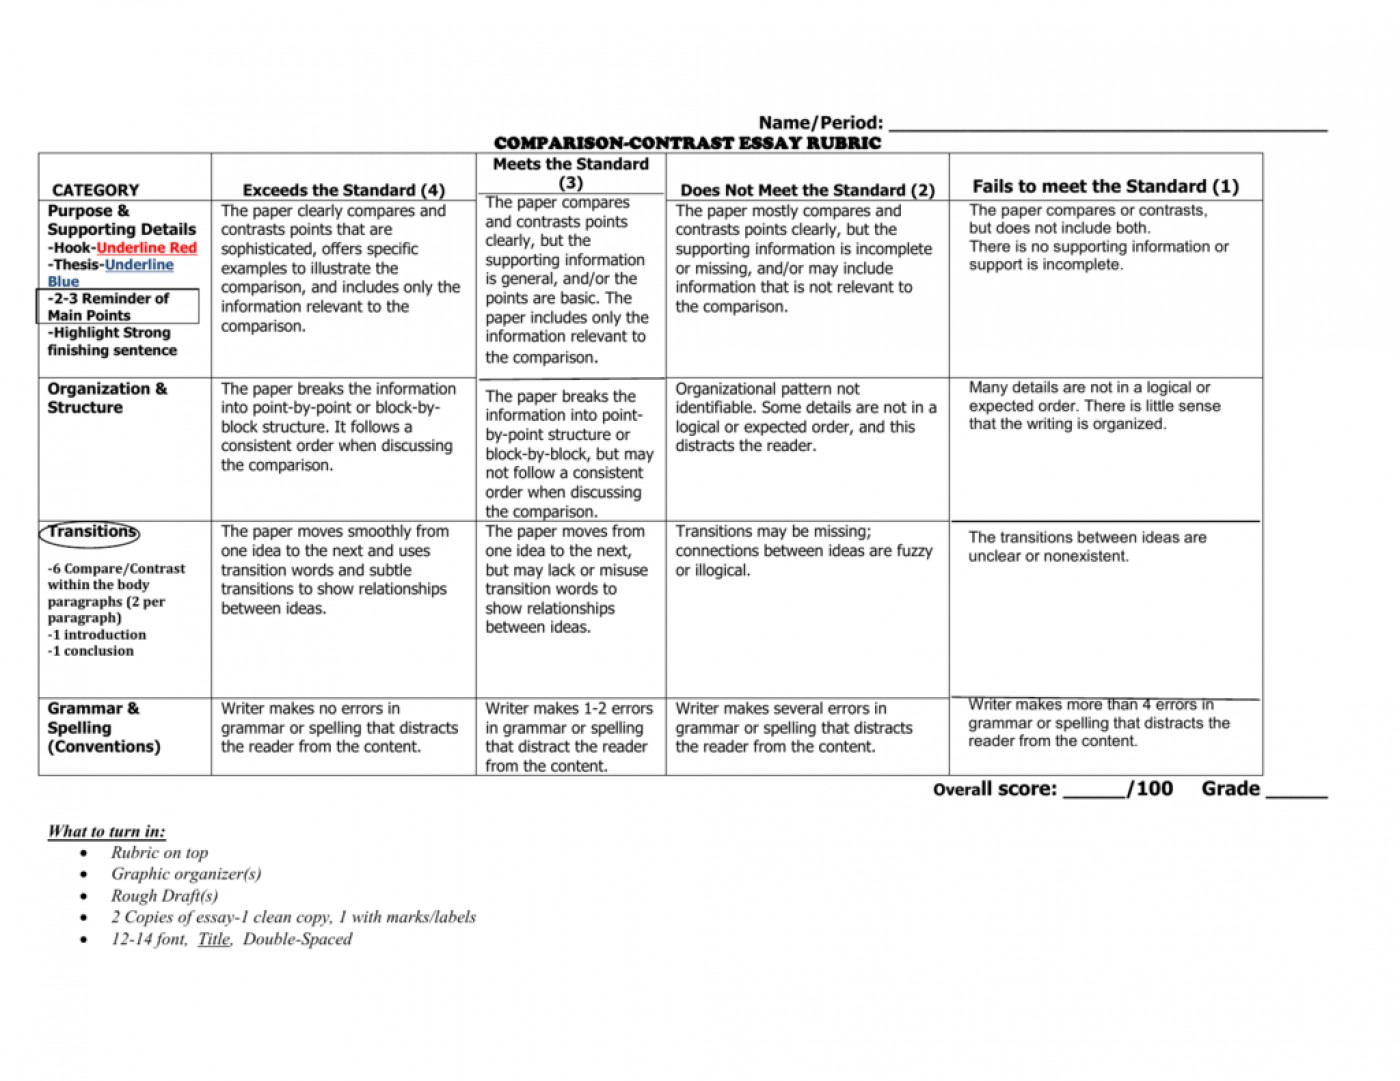 001 Compare And Contrast Essay Rubric Example 007352296 1 Wondrous 3rd Grade High School 1400